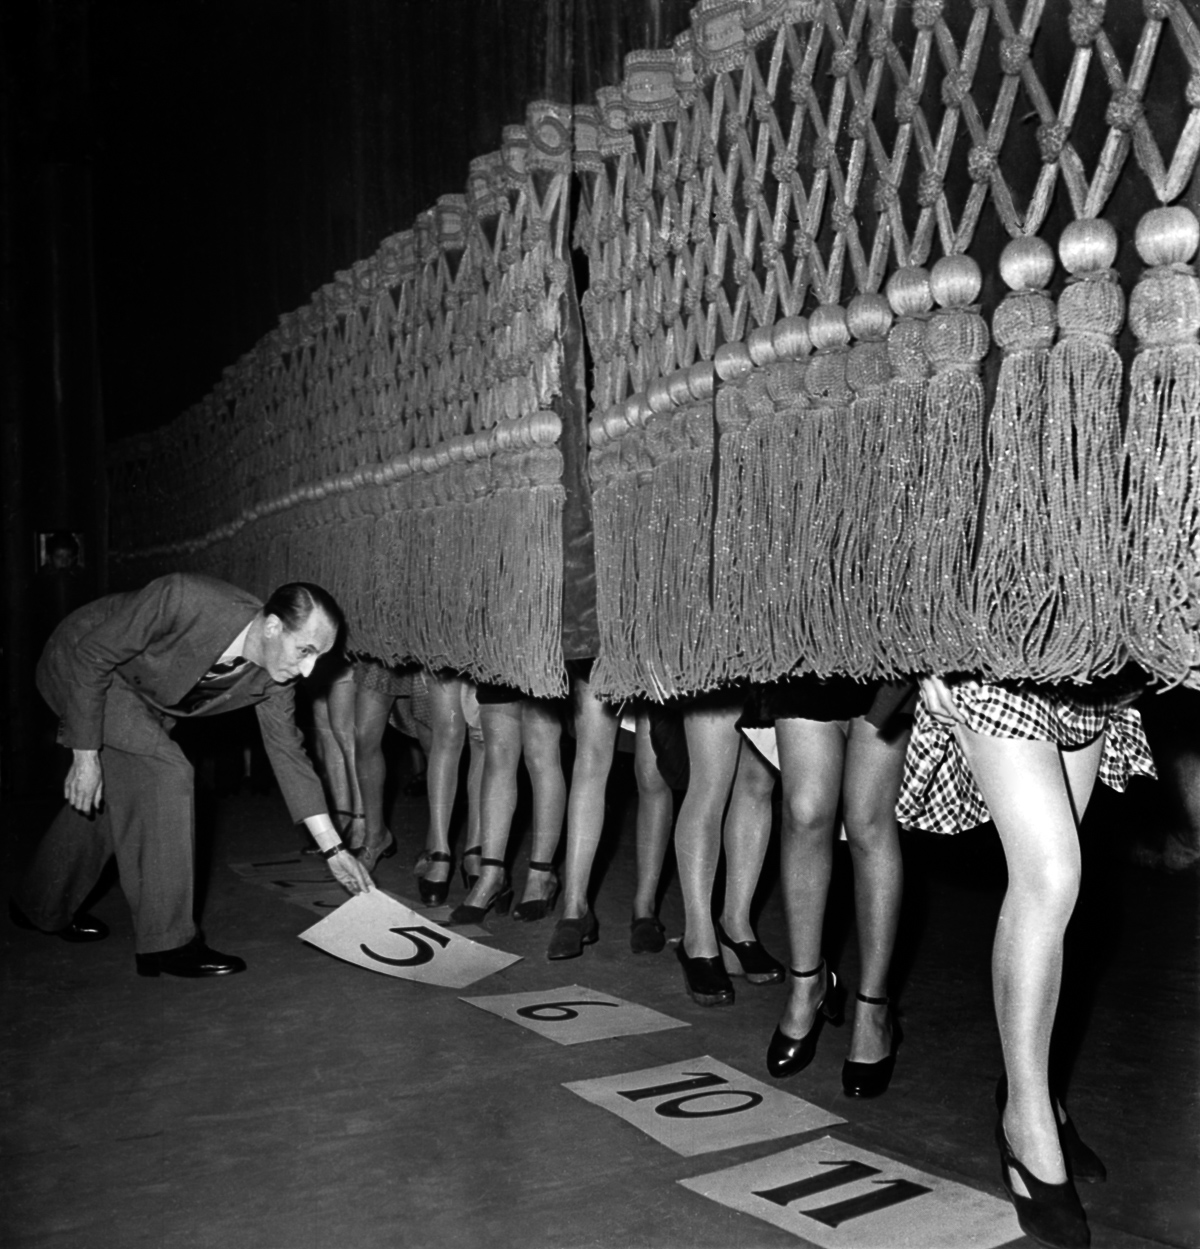 Contest for the most beautiful legs, Paris, december 1946. (Photo by AGIP/RDA/Getty Images)